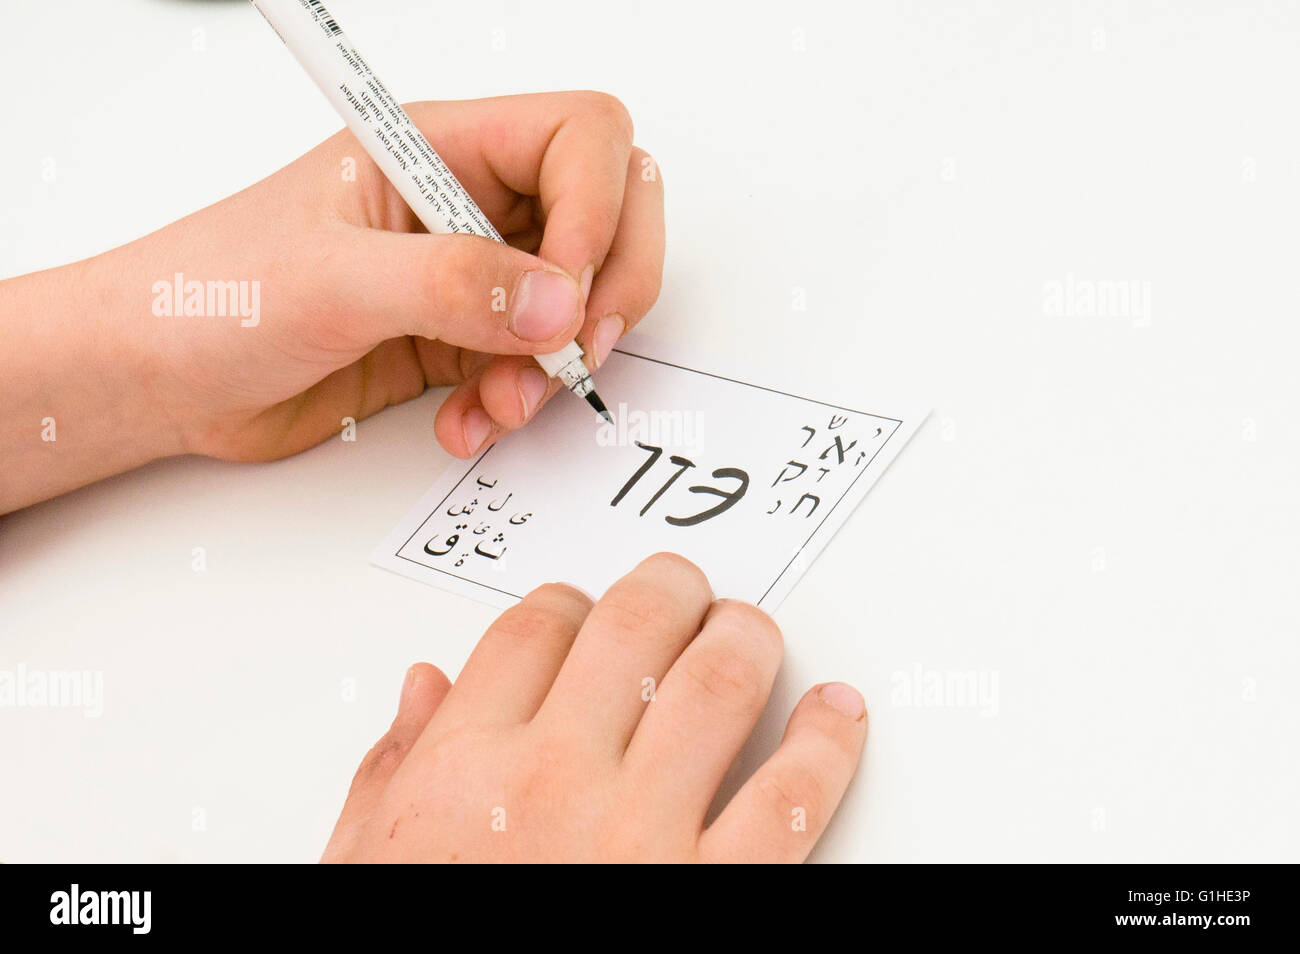 Arabic, Hebrew, Jewish, alphabet, characters, letters, child, left handed writing - Stock Image